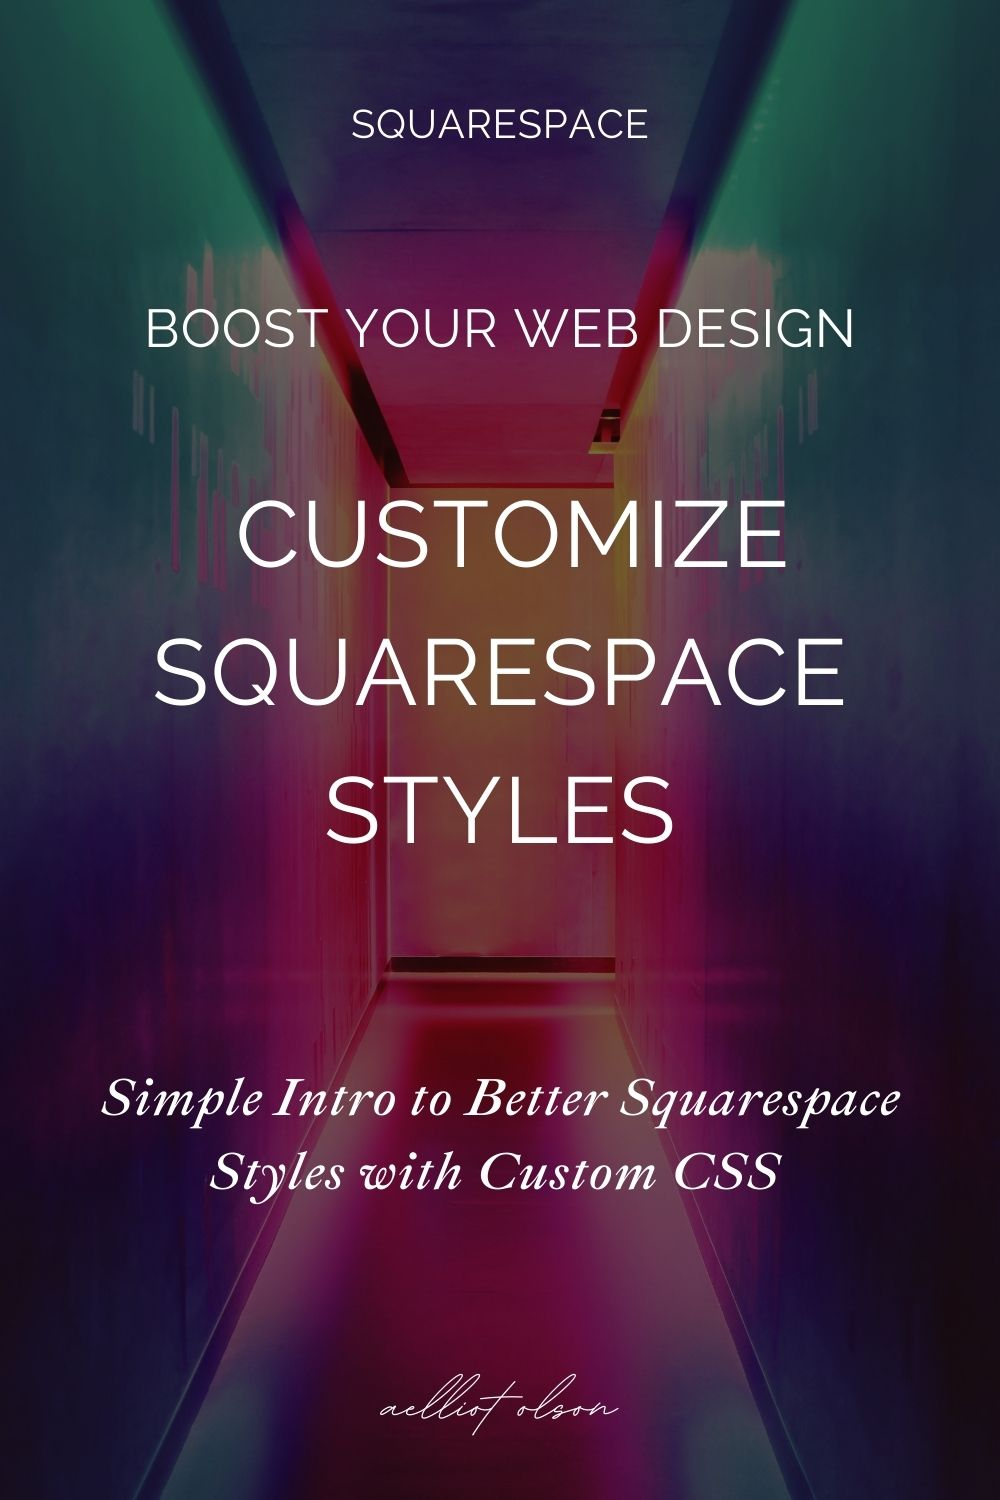 squarespace easy css custom style article